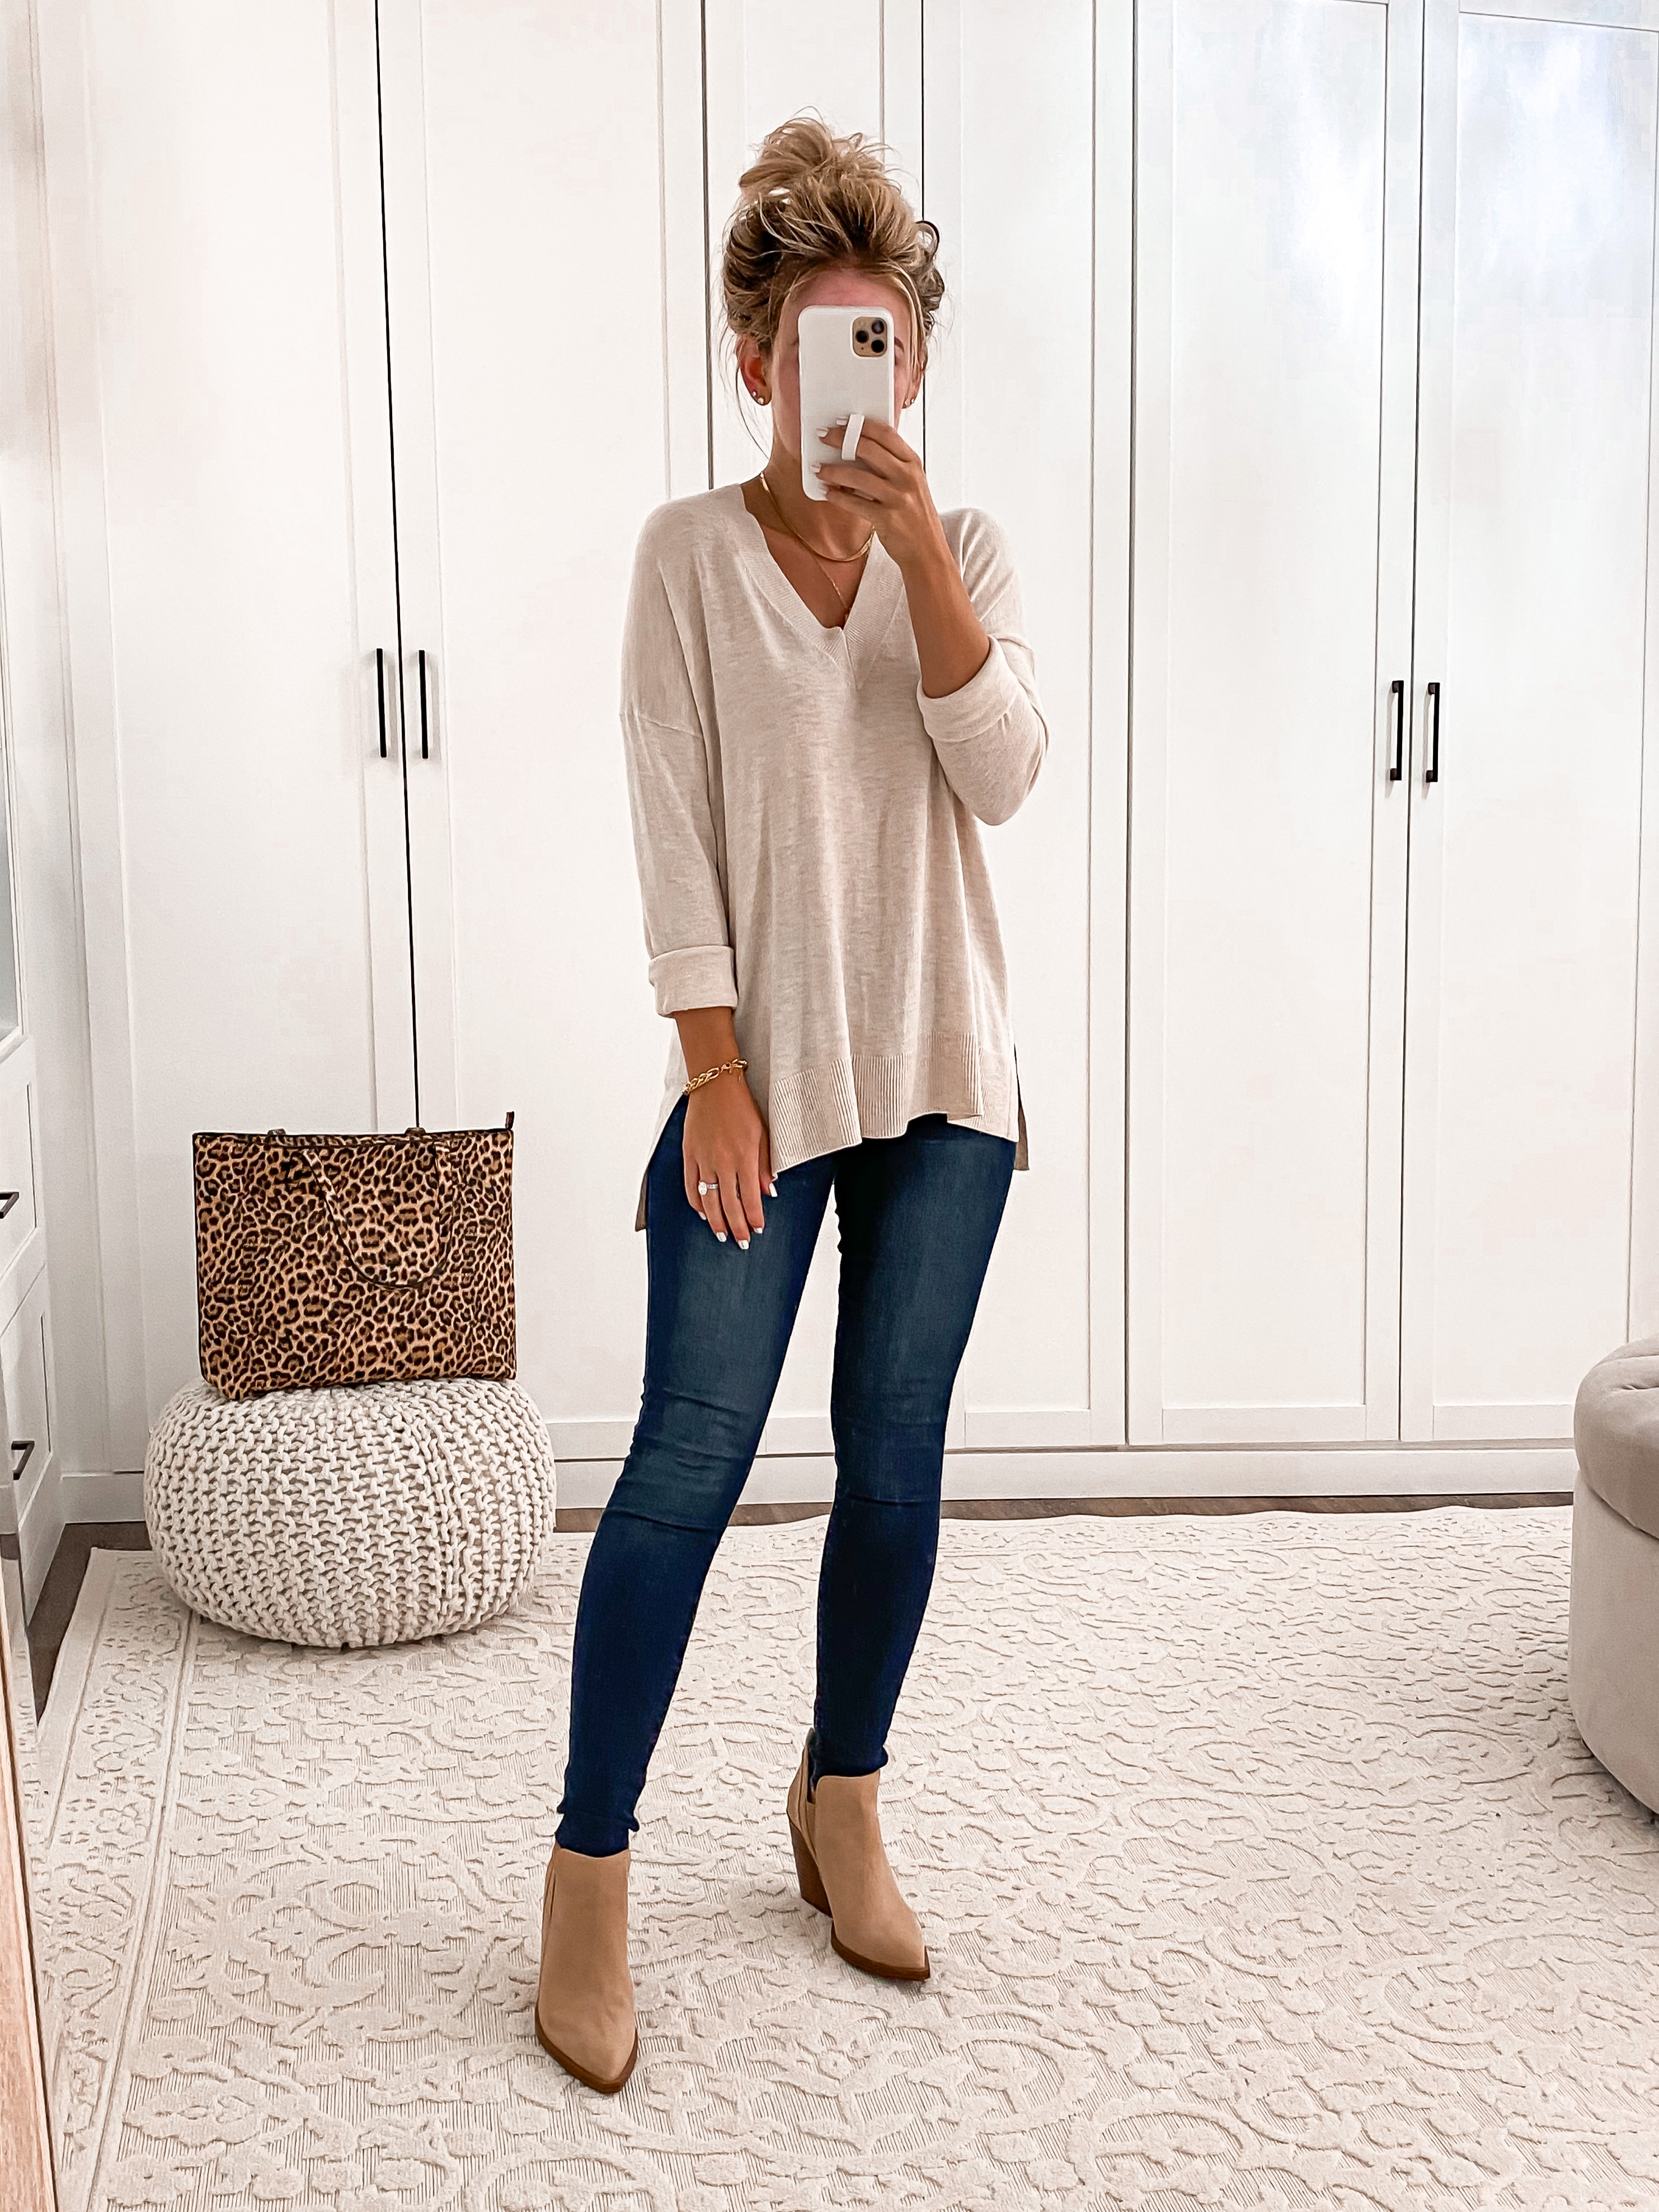 Nordstrom Anniversary Sale 2020 Nsale Laura Beverlin Fall outfit ideas14